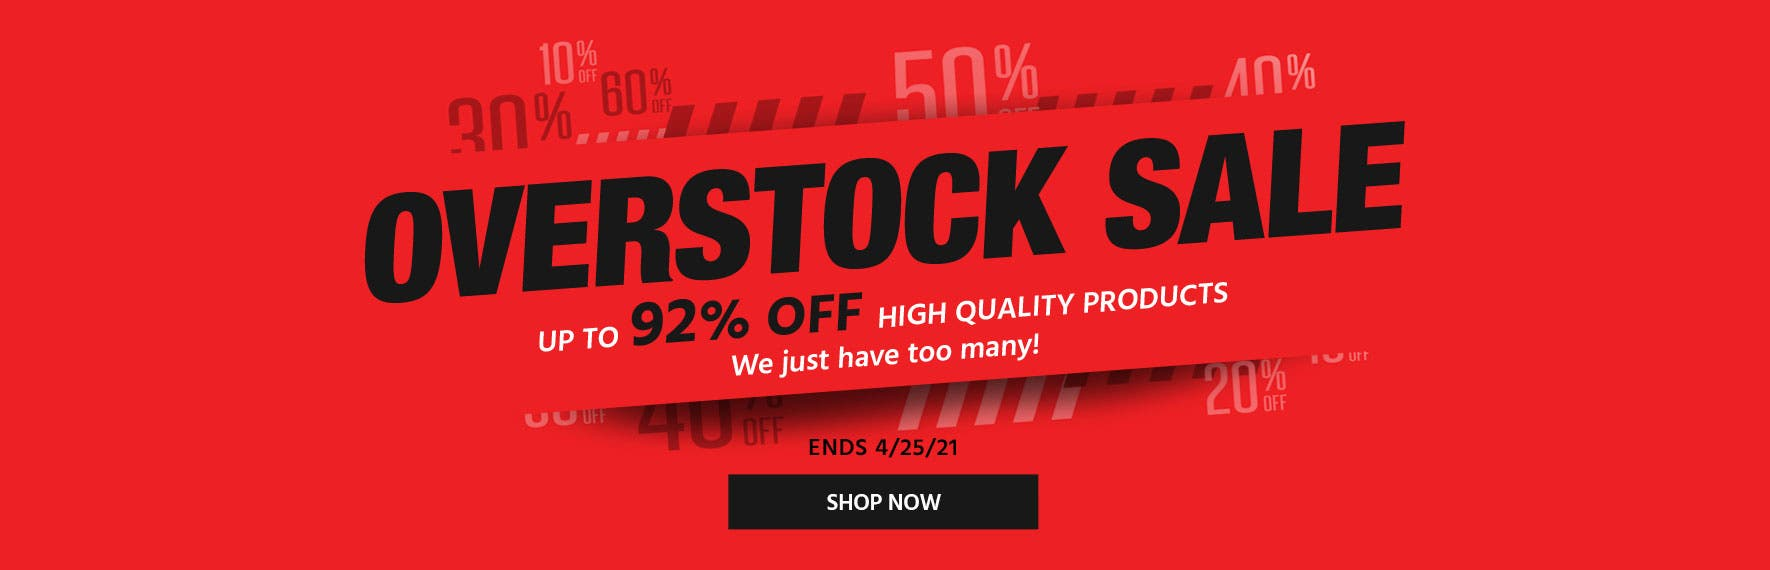 """Overstock Sale  Up to 92% Off quality products we just have too many of!  Ends 4/25/21 Shop Now >"""